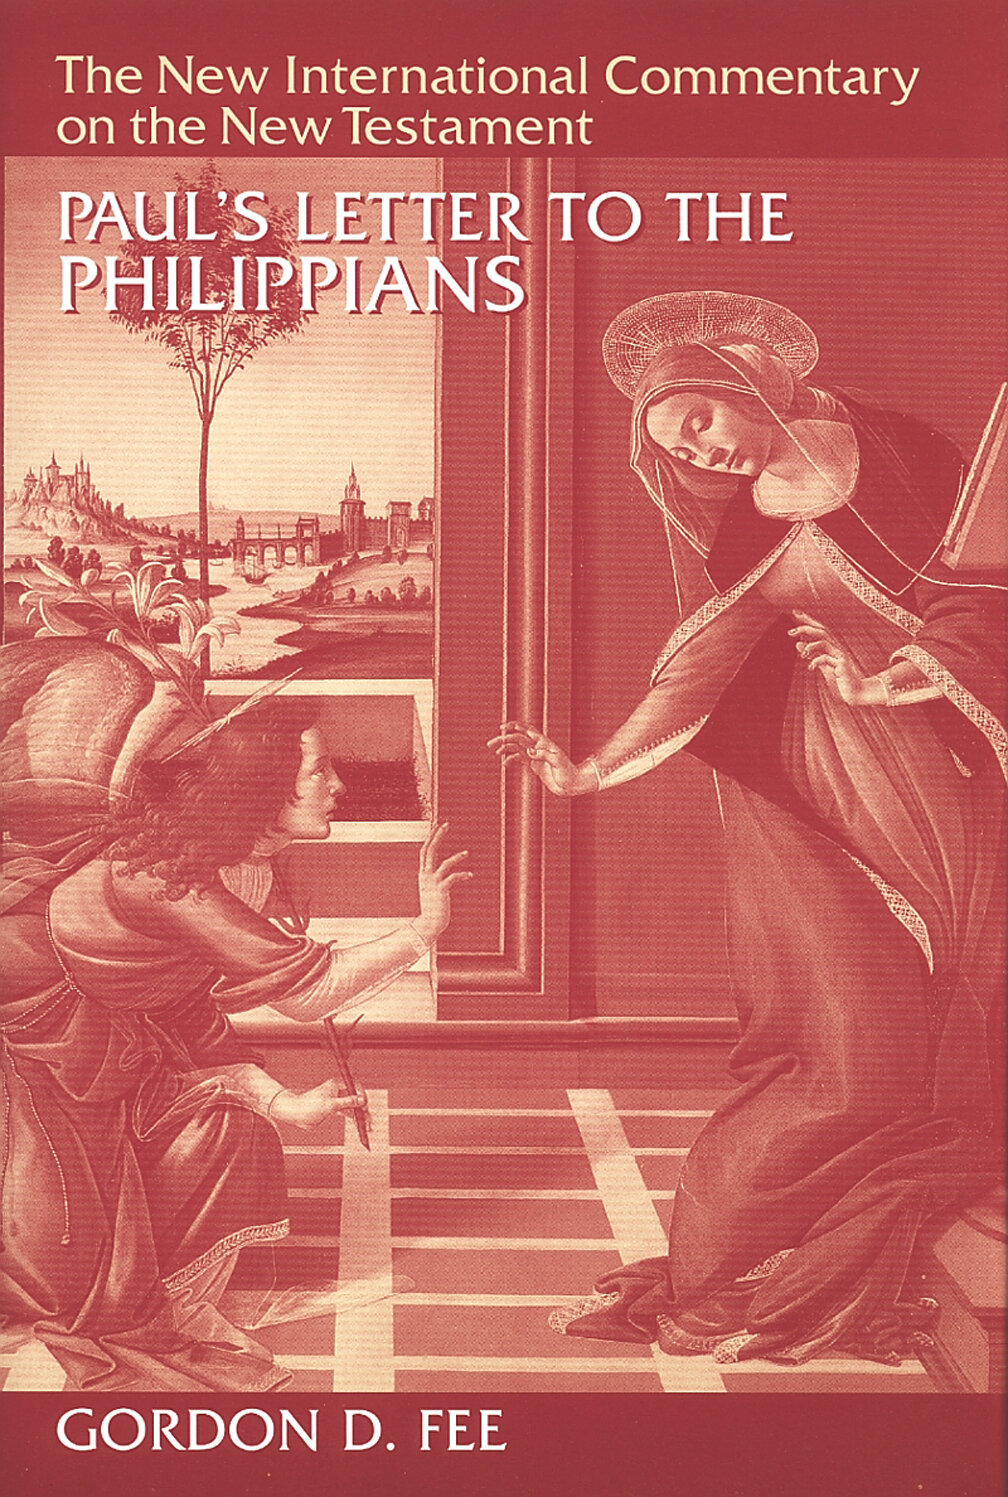 Paul's Letter to the Philippians (The New International Commentary on the New Testament | NICNT)